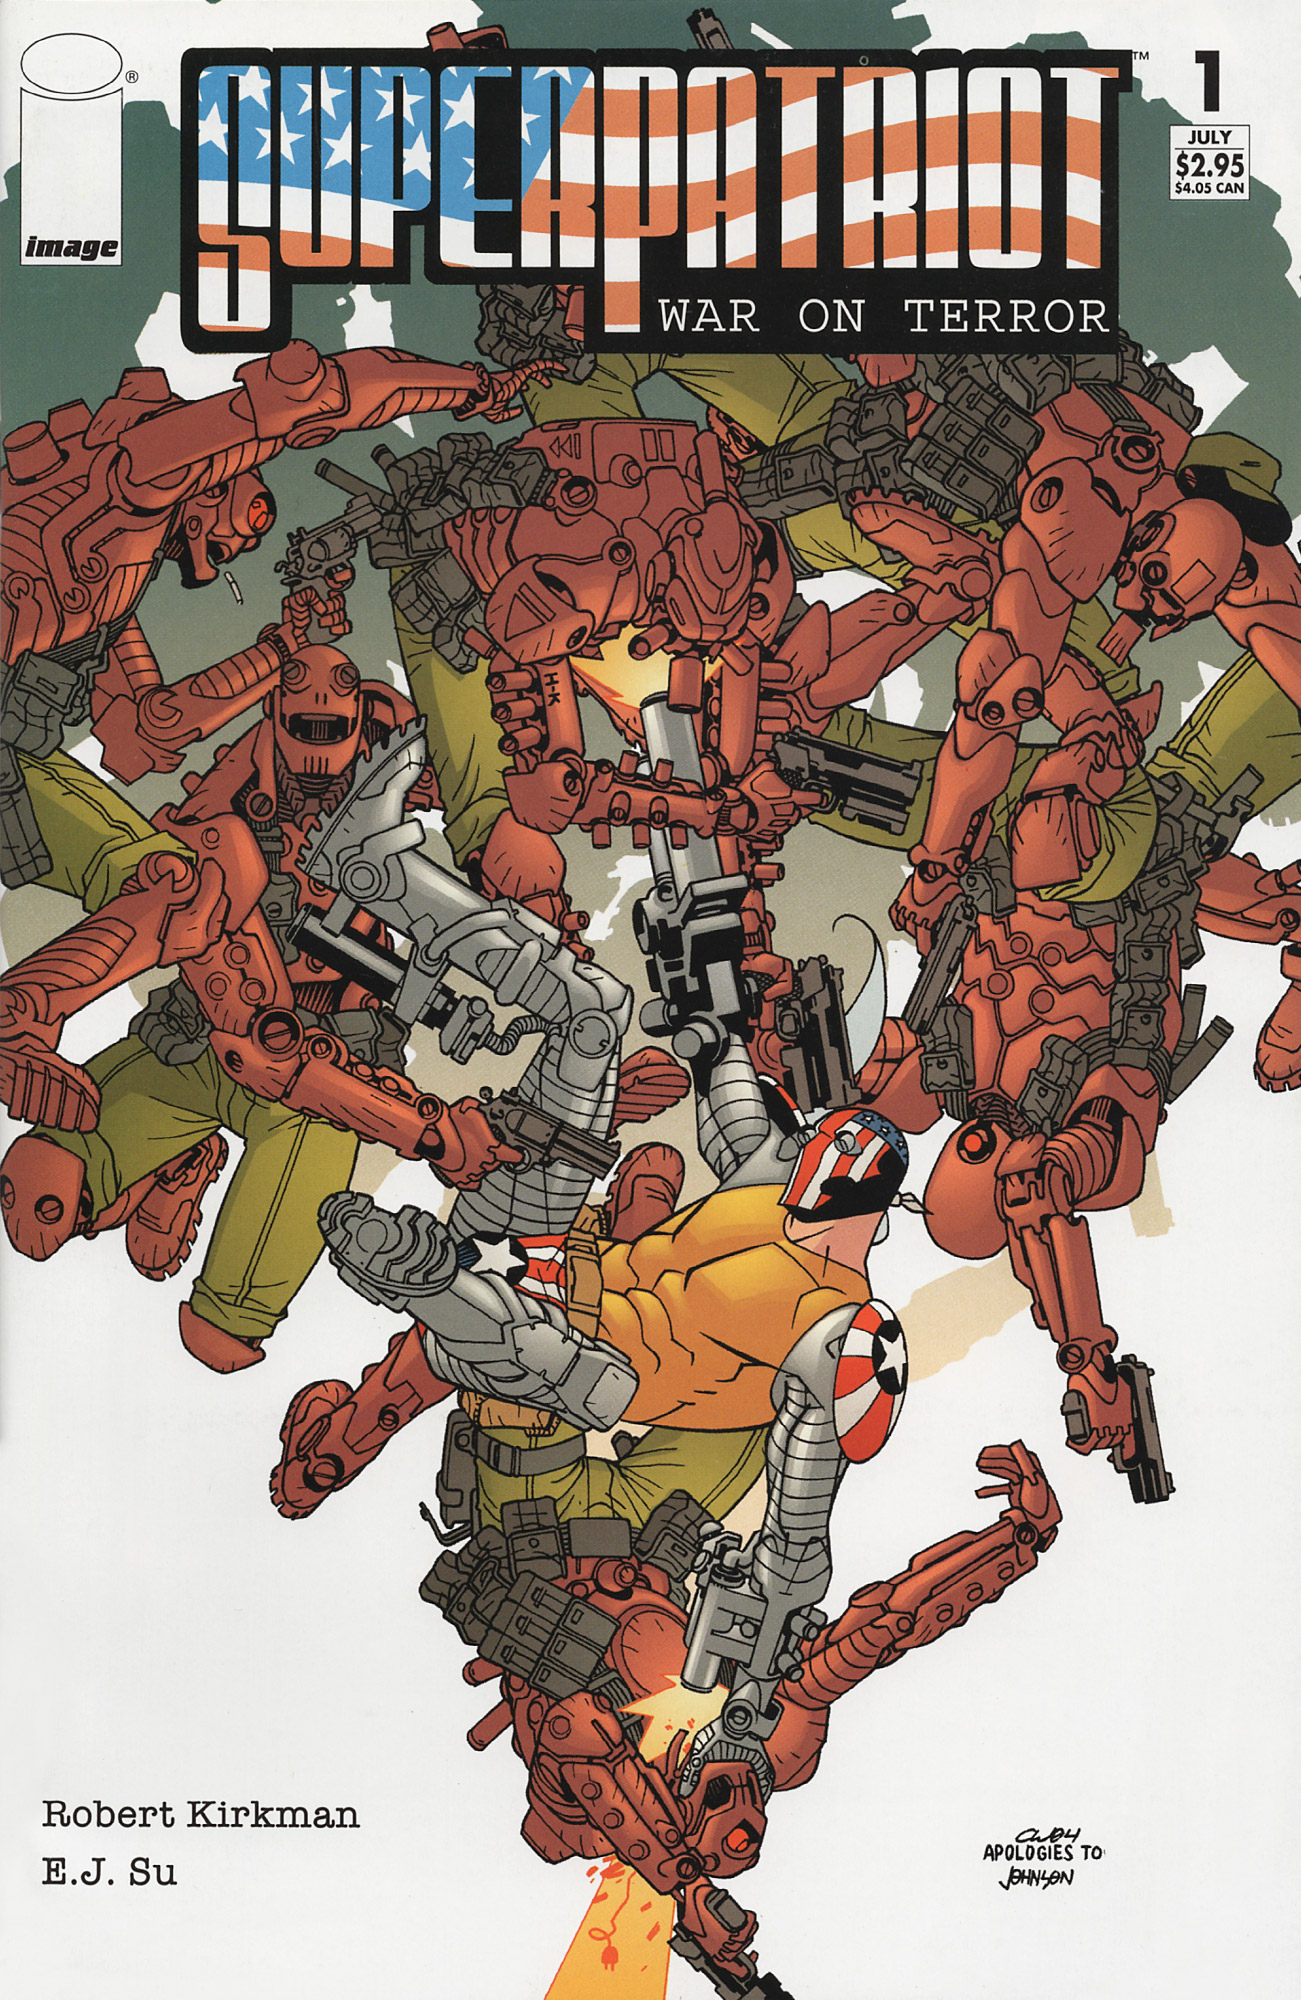 Cover SuperPatriot Vol.4 #1